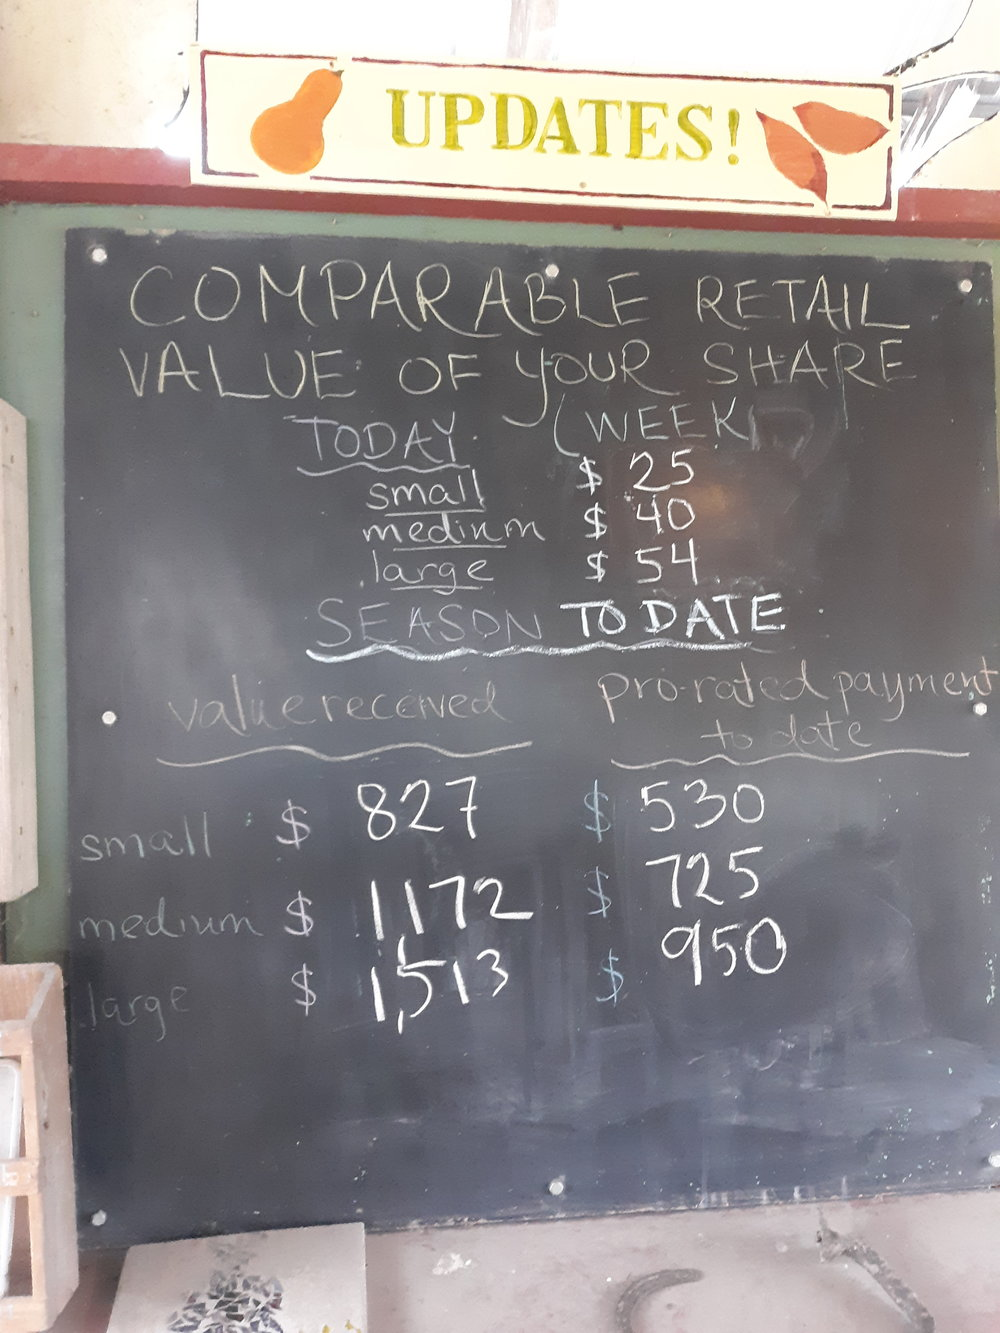 Share value is the difference between what you paid for your share and what you would have paid for comparable produce at retail price.